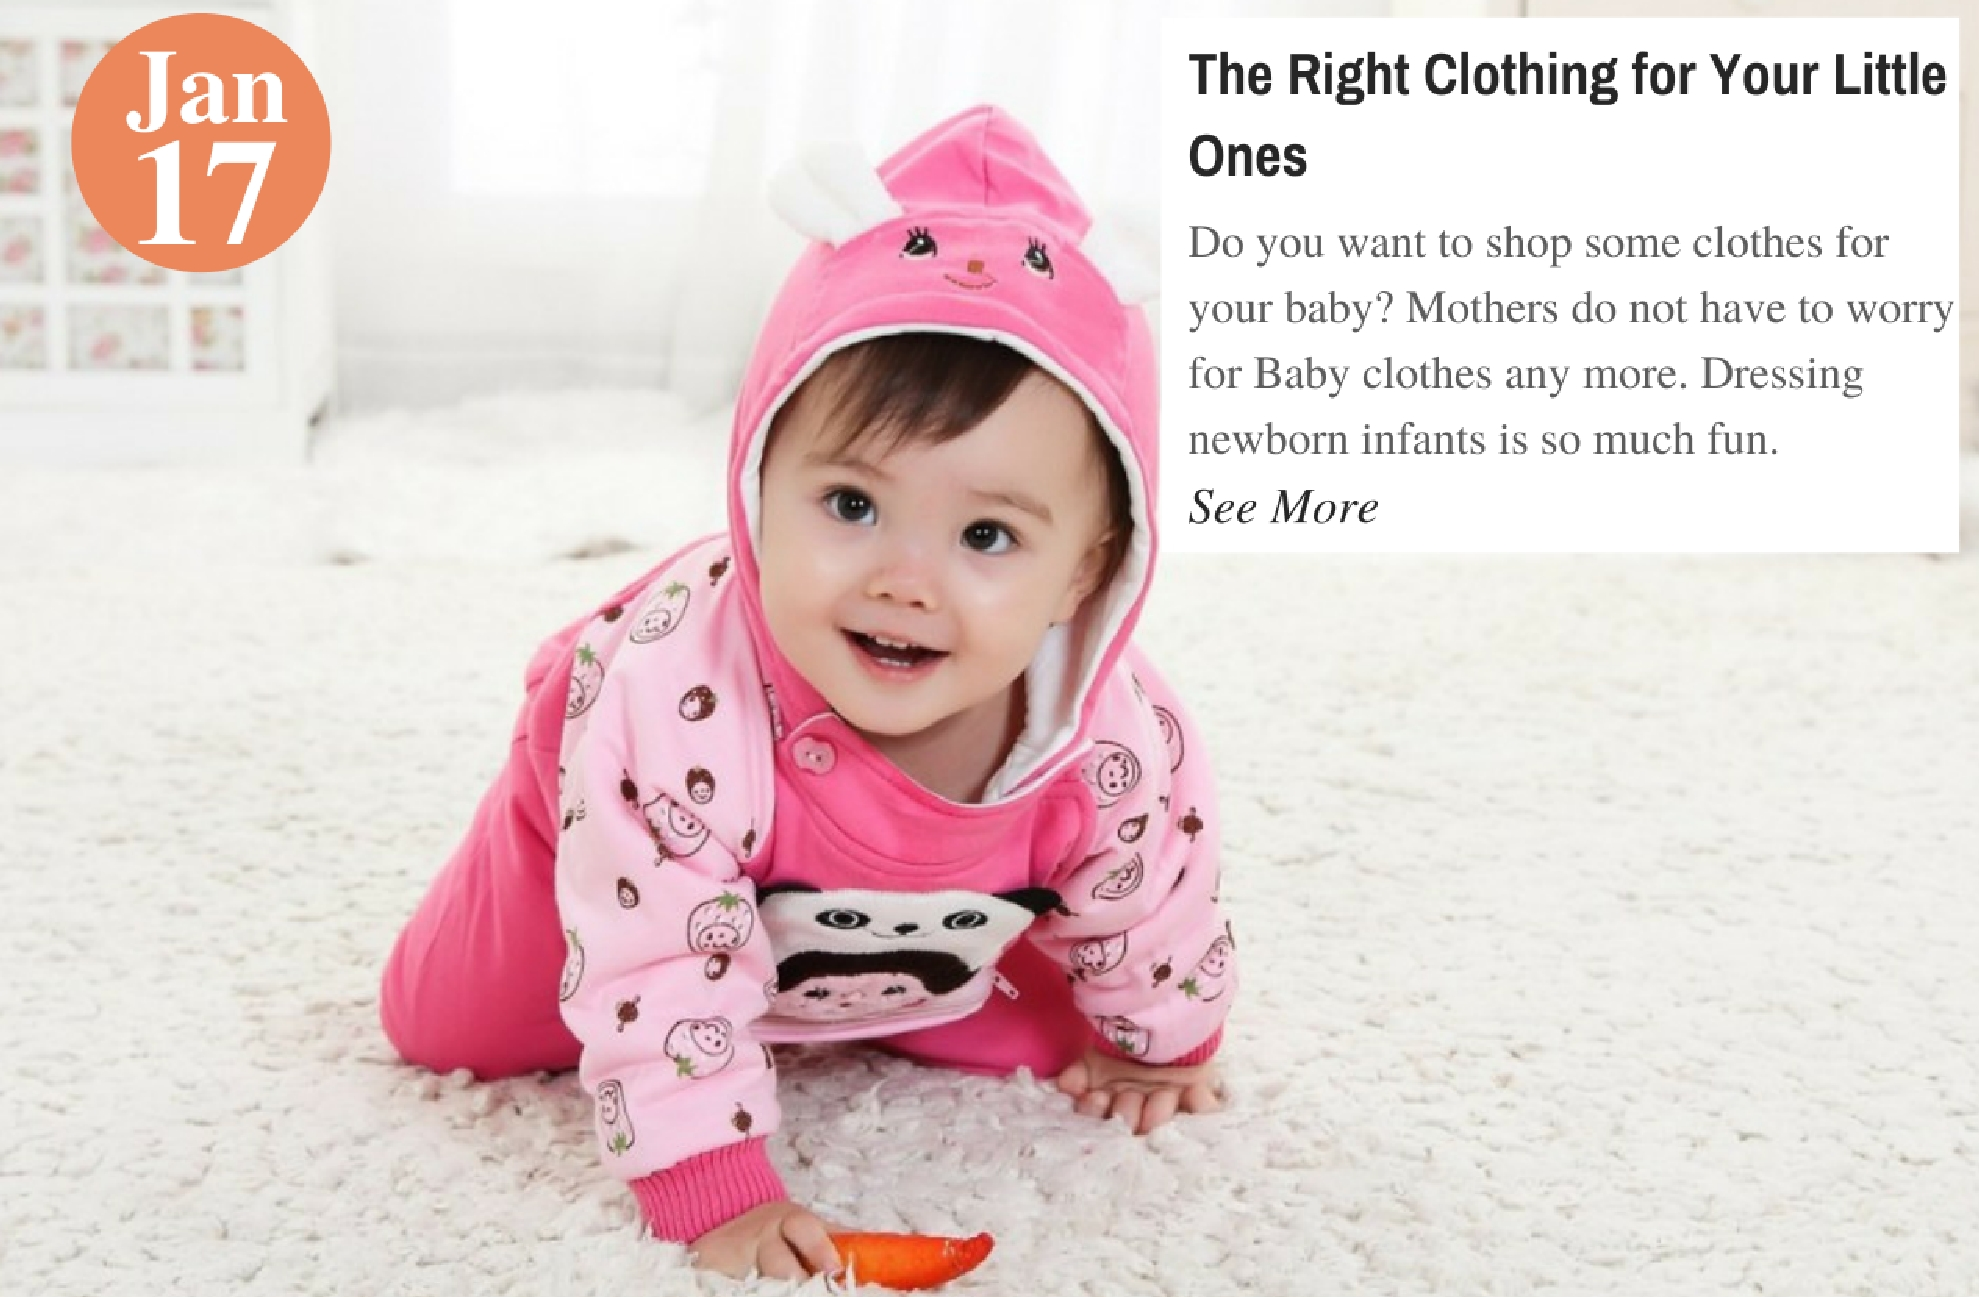 The Right Clothing for Your Little Ones